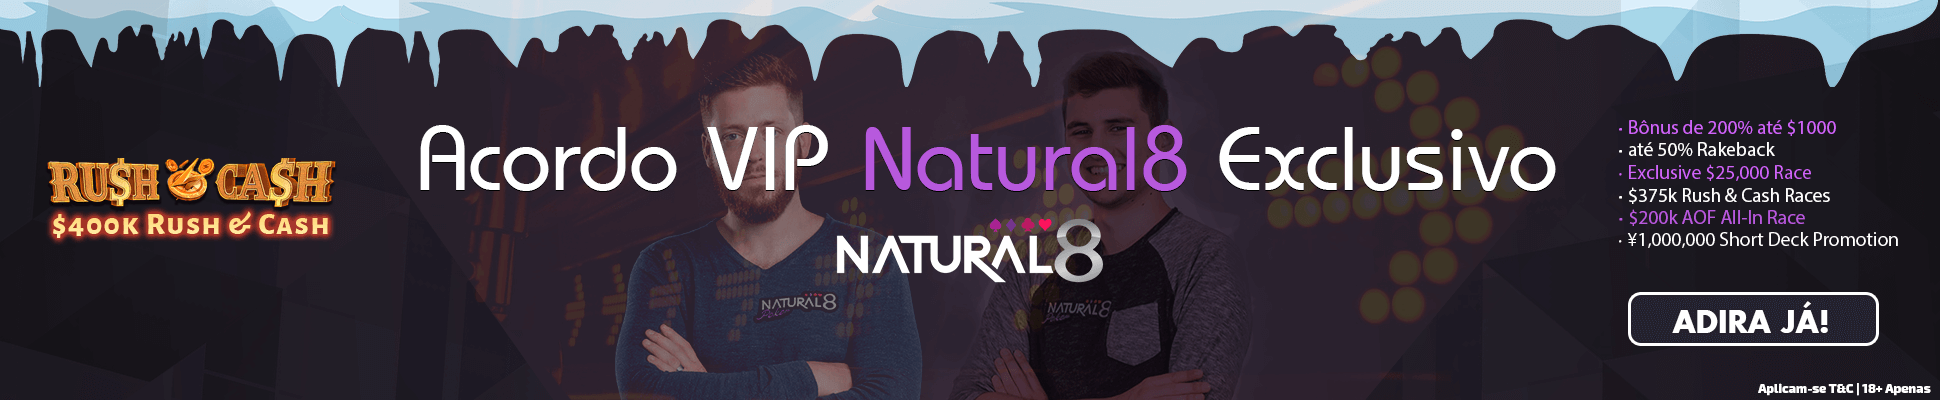 natural8-slider-created-february-2020-1